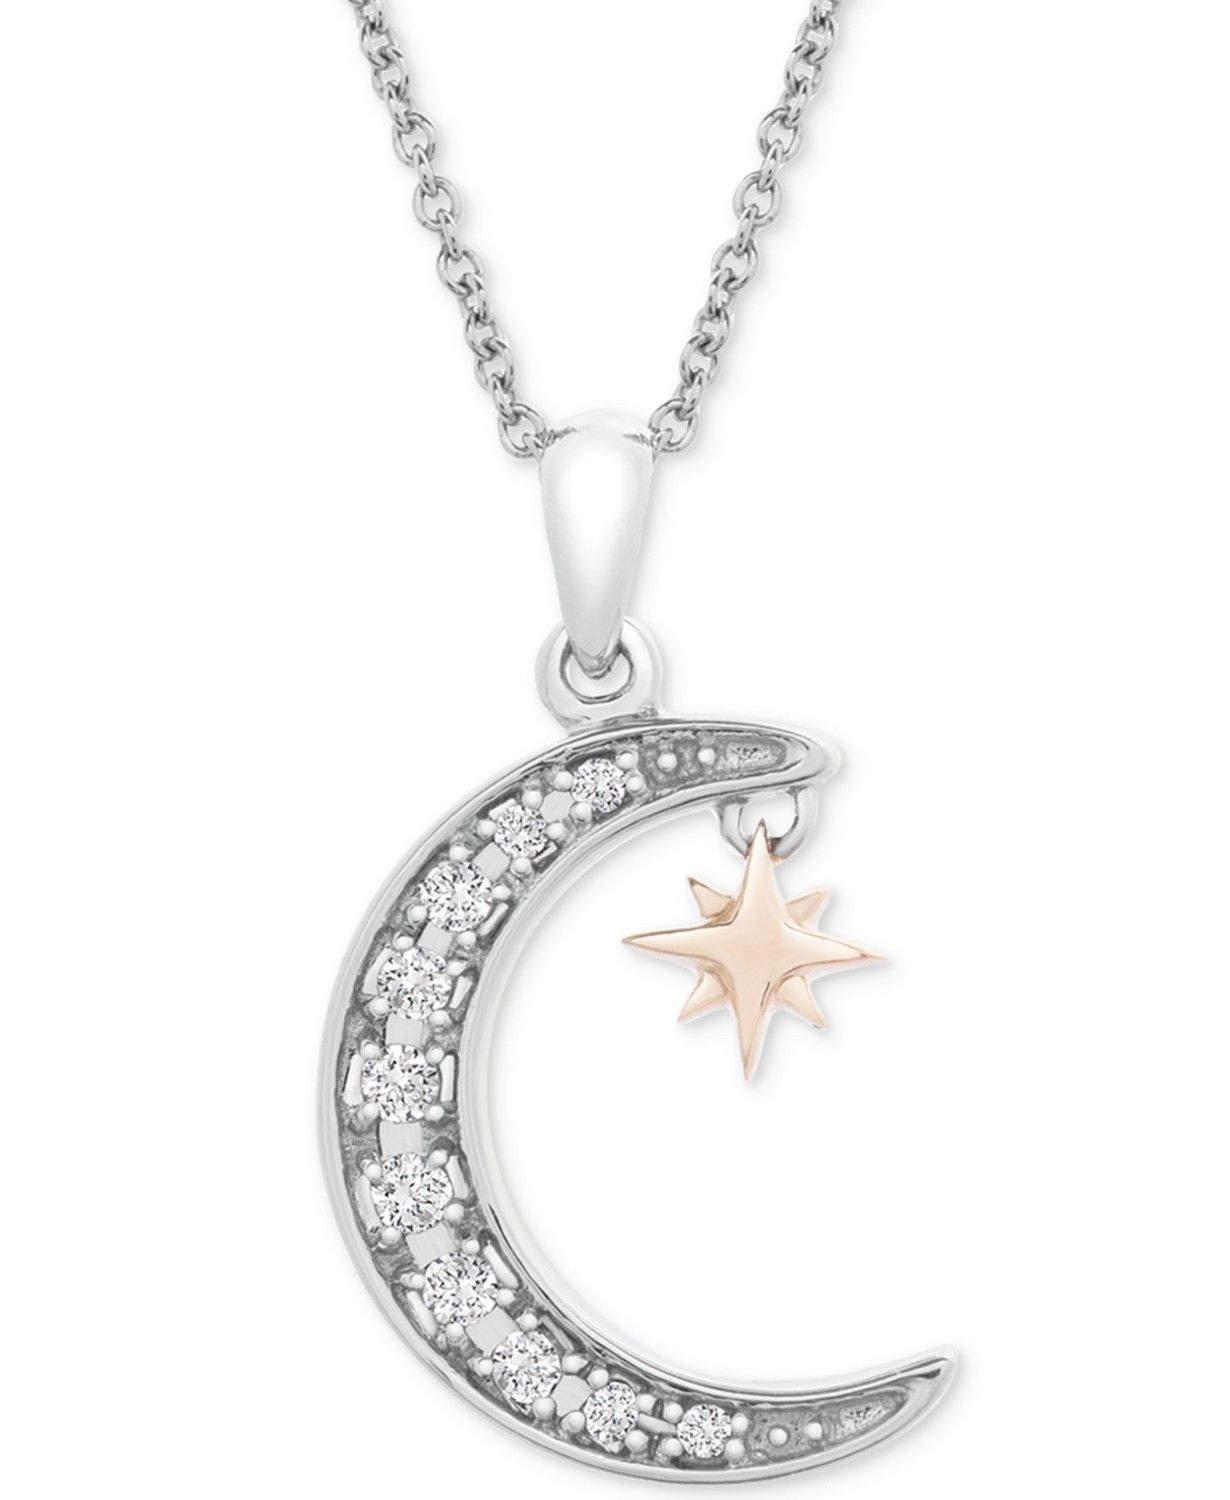 Diamond Crescent Moon Star 20 Pendant Necklace 1 10 Ct T W In Sterling Silver 14k Gold Plat Crescent Moon Jewelry Moon Jewelry Diamond Crescent Moon